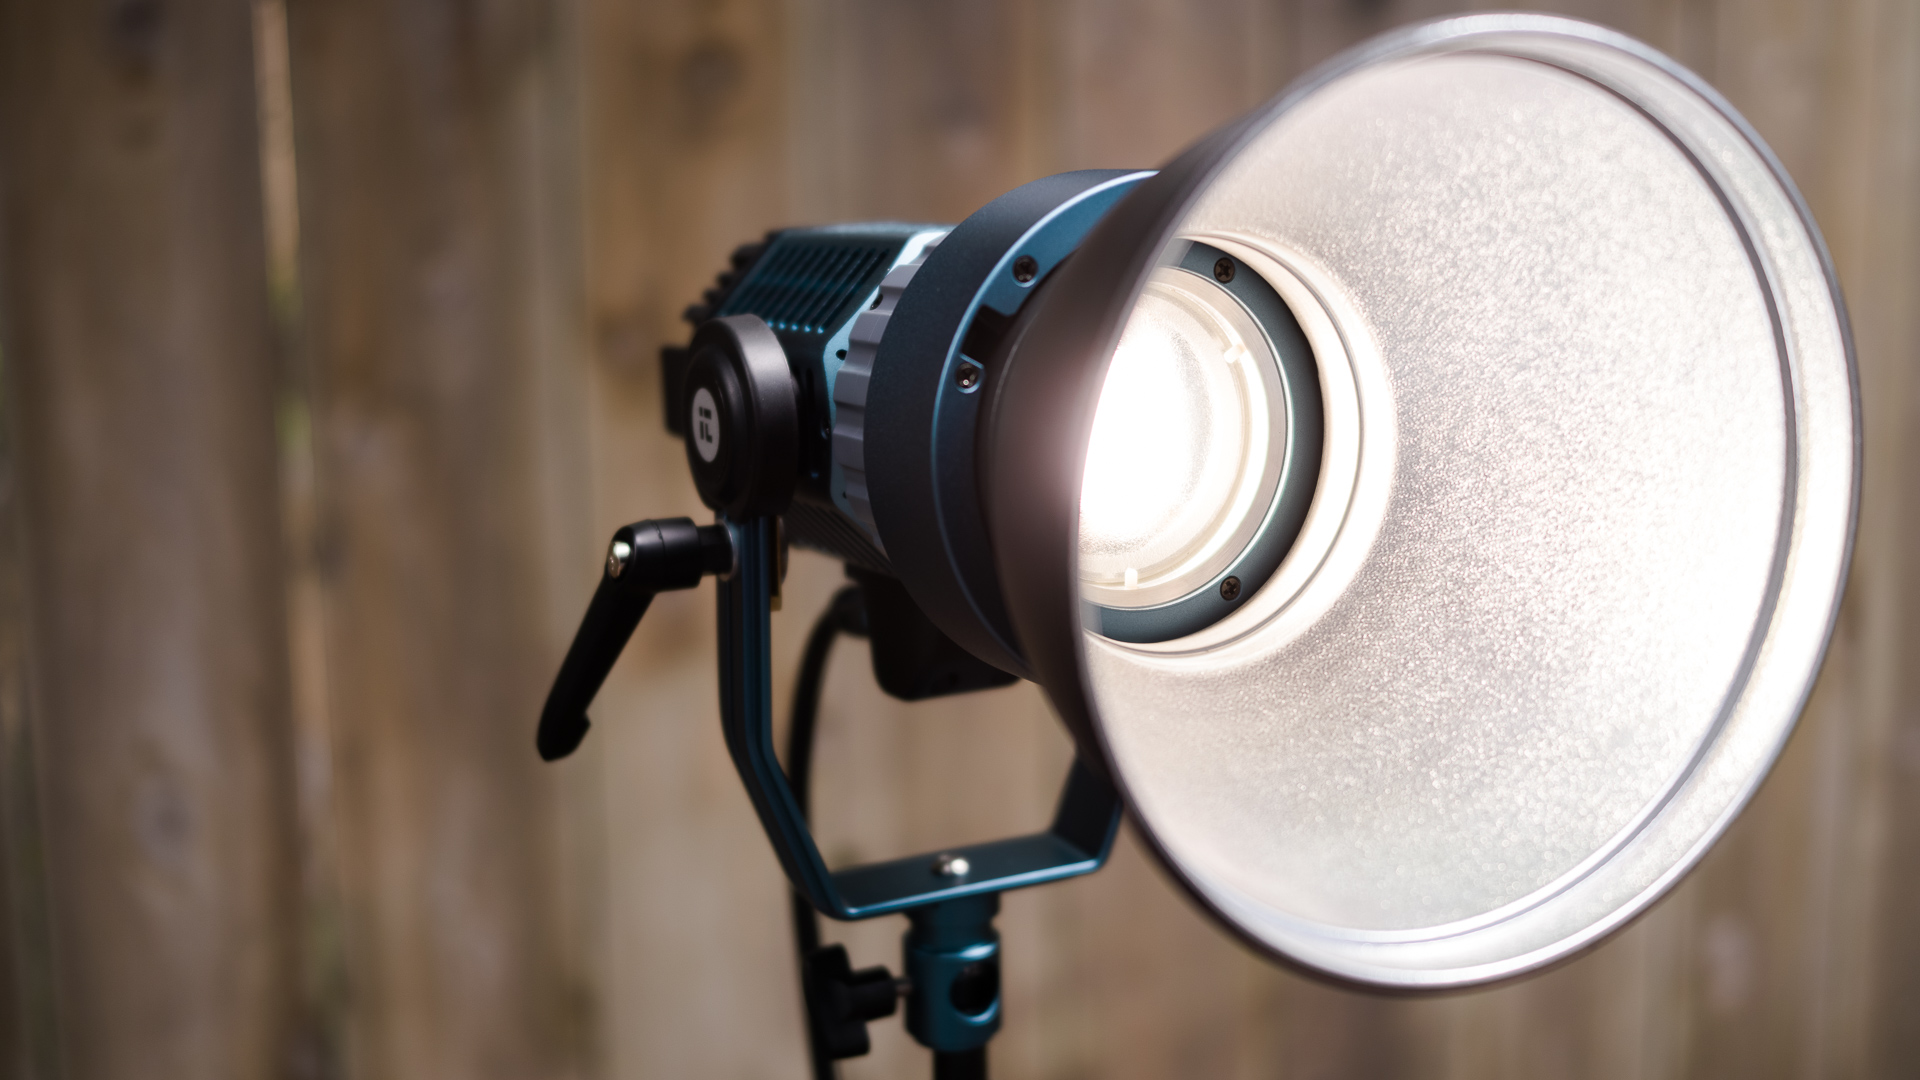 Reseña del Intellytech Light Cannon X-100: un Fresnel LED bicolor potente y portátil